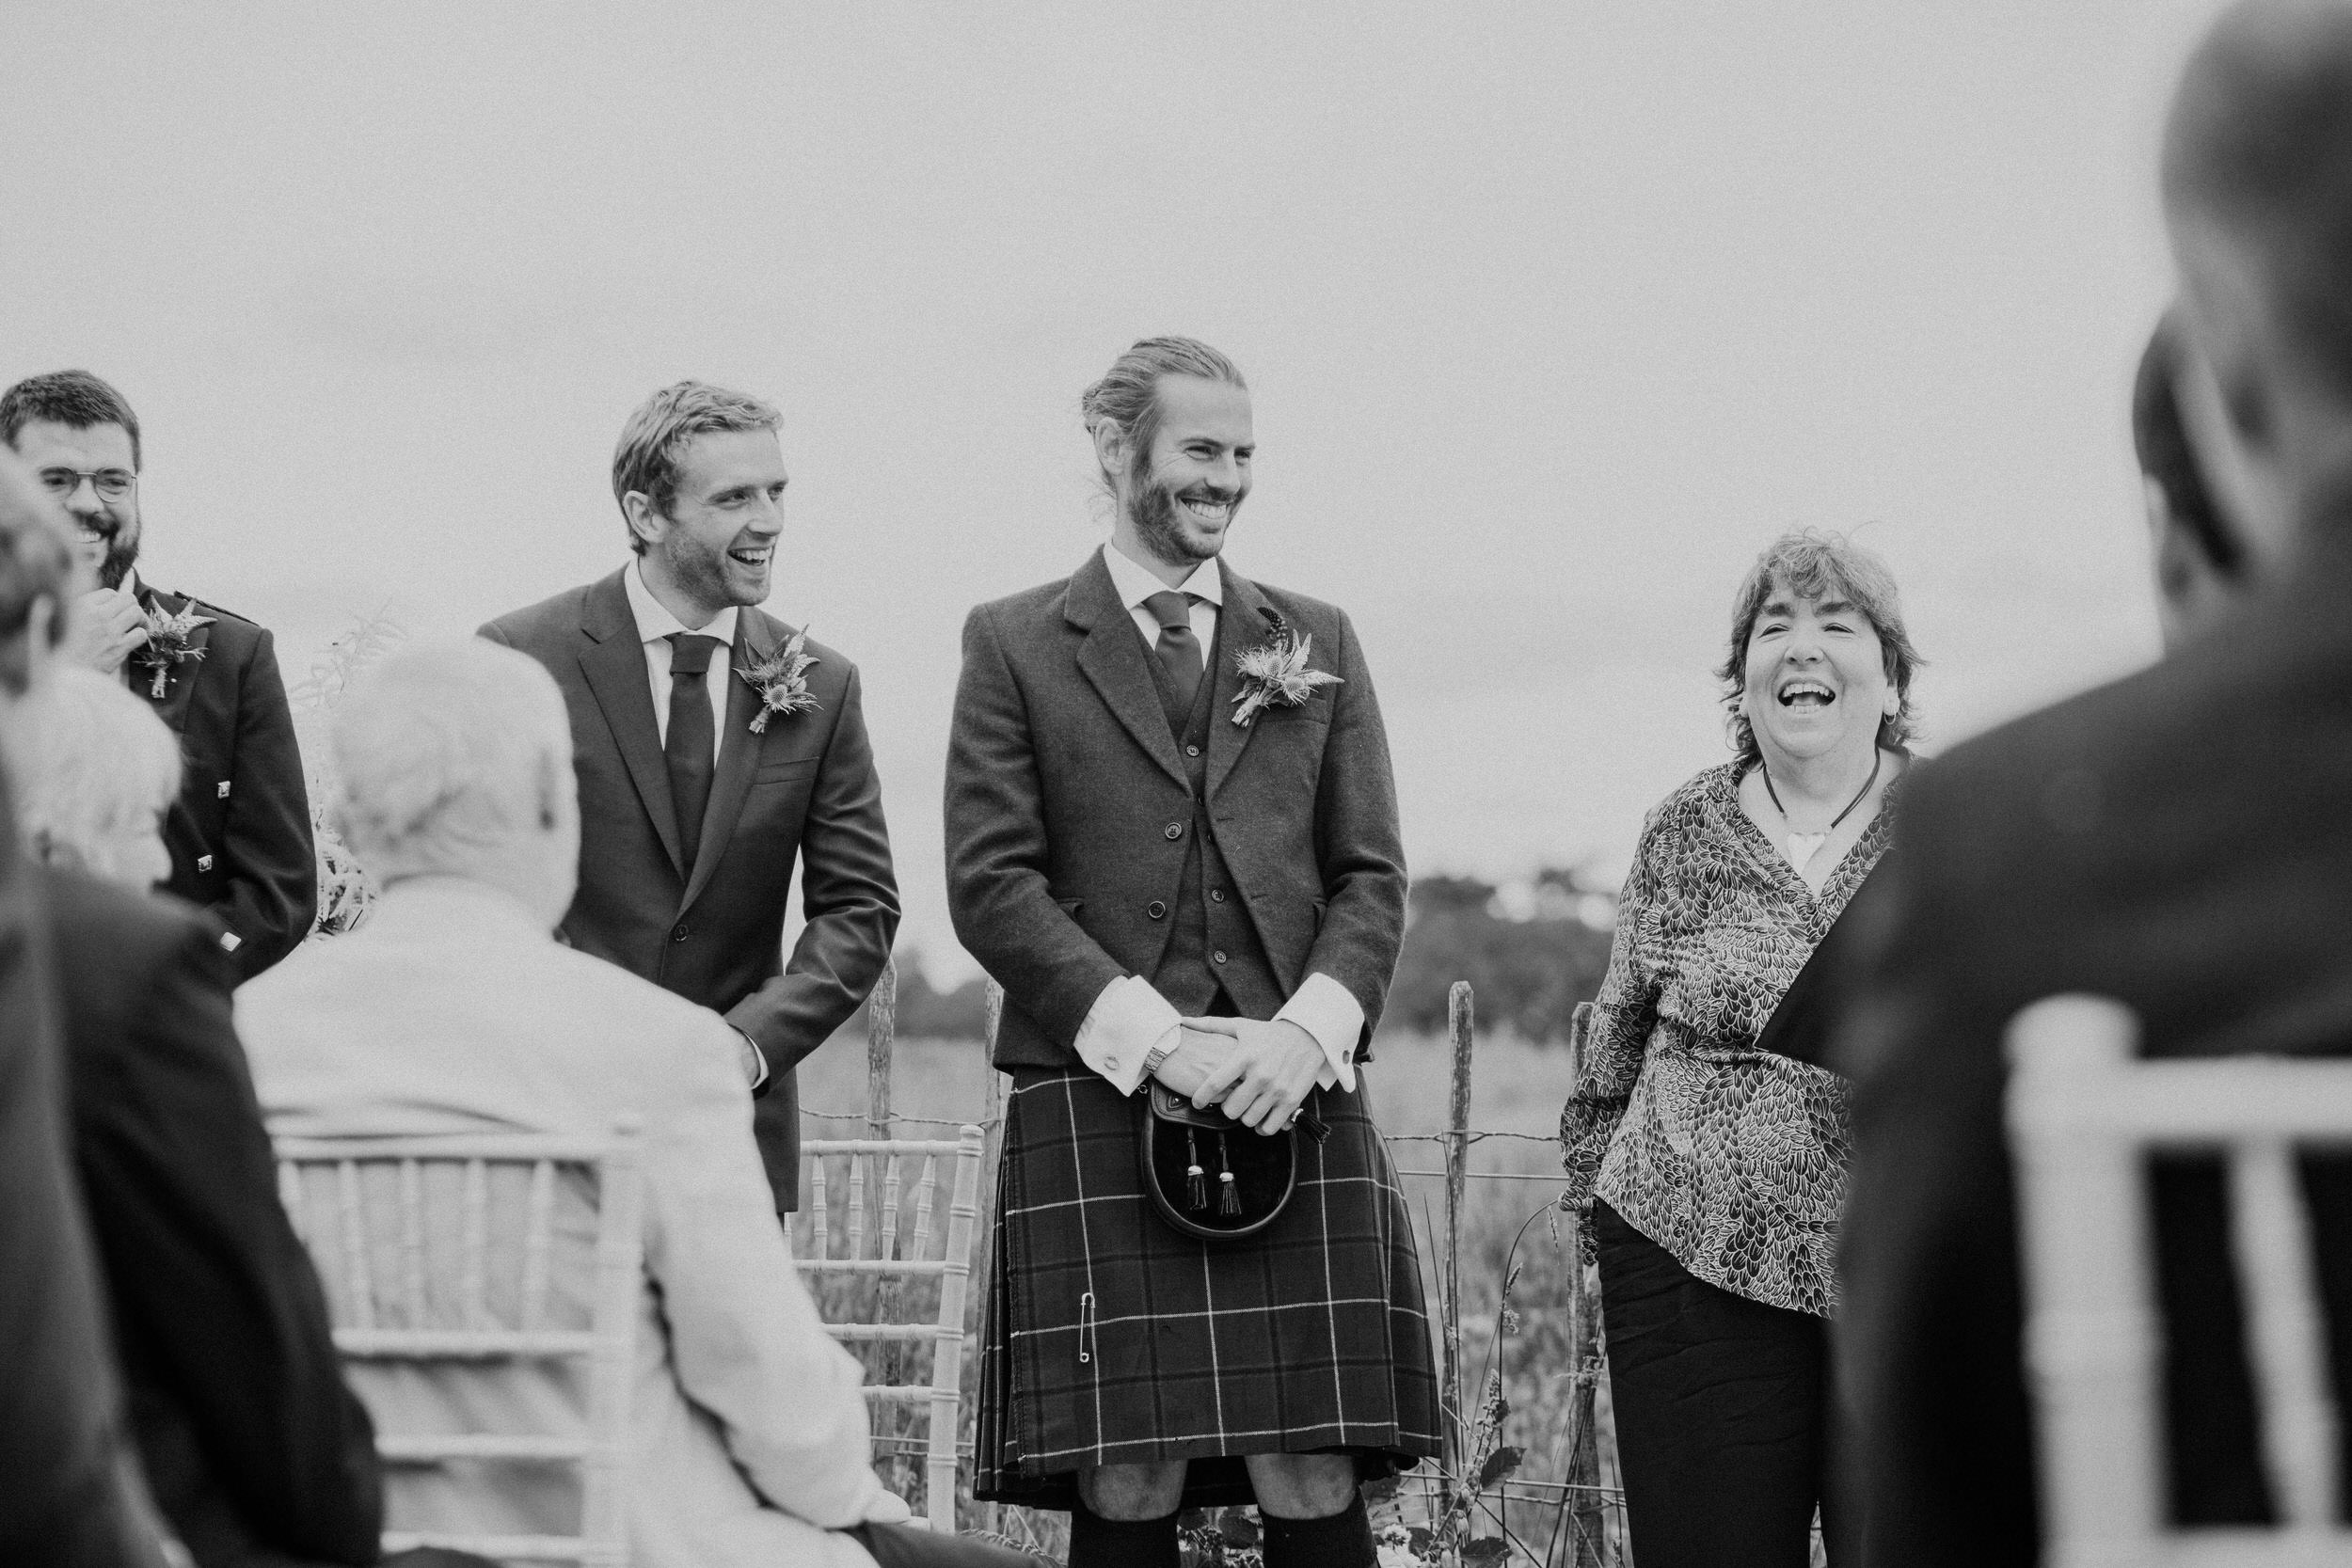 Alternative Quirky Wedding Photographer Scotland Borders Edinburgh 028.jpg